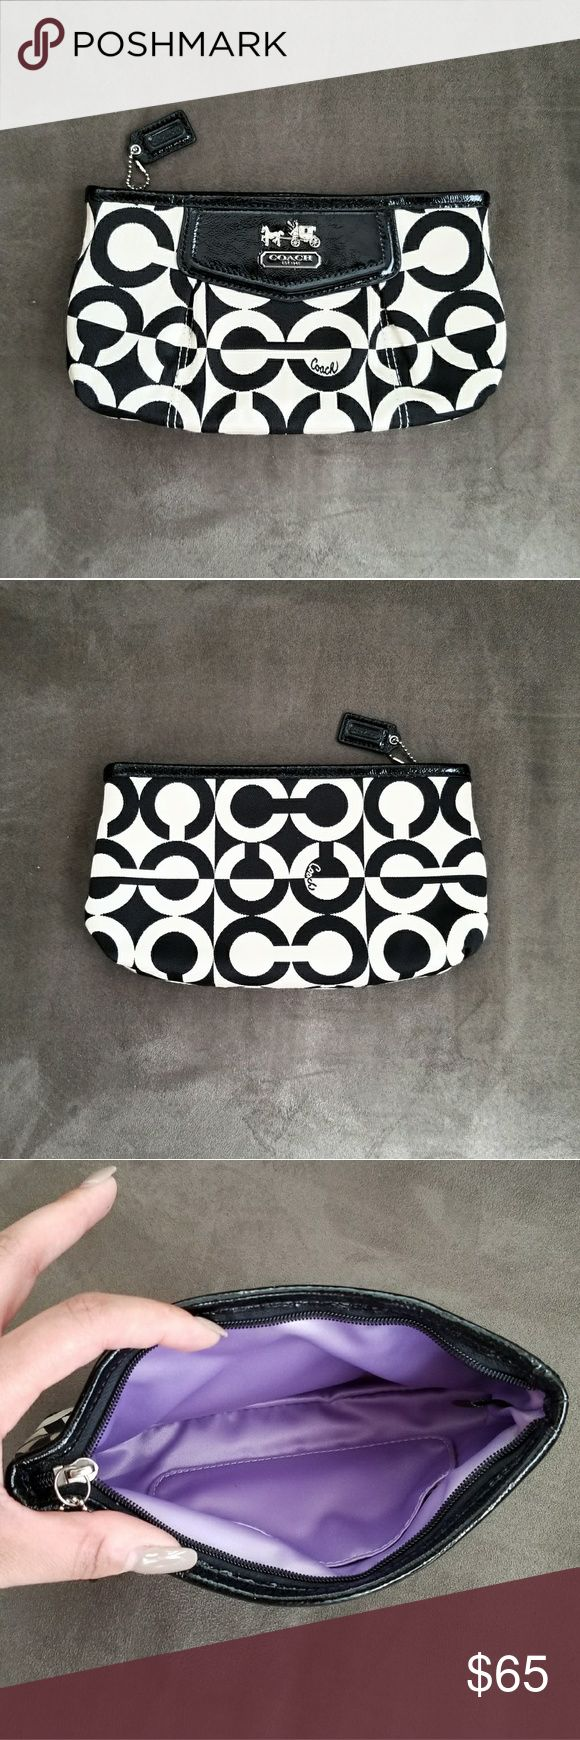 Coach Clutch Beautiful Black & White Sateen Coach Clutch   100% Authentic   LIKE NEW condition!  ▪Sateen fabric exterior with patent leather trim  ▪Top zip closure  ▪Lavender interior fabric lining Coach Bags Clutches & Wristlets